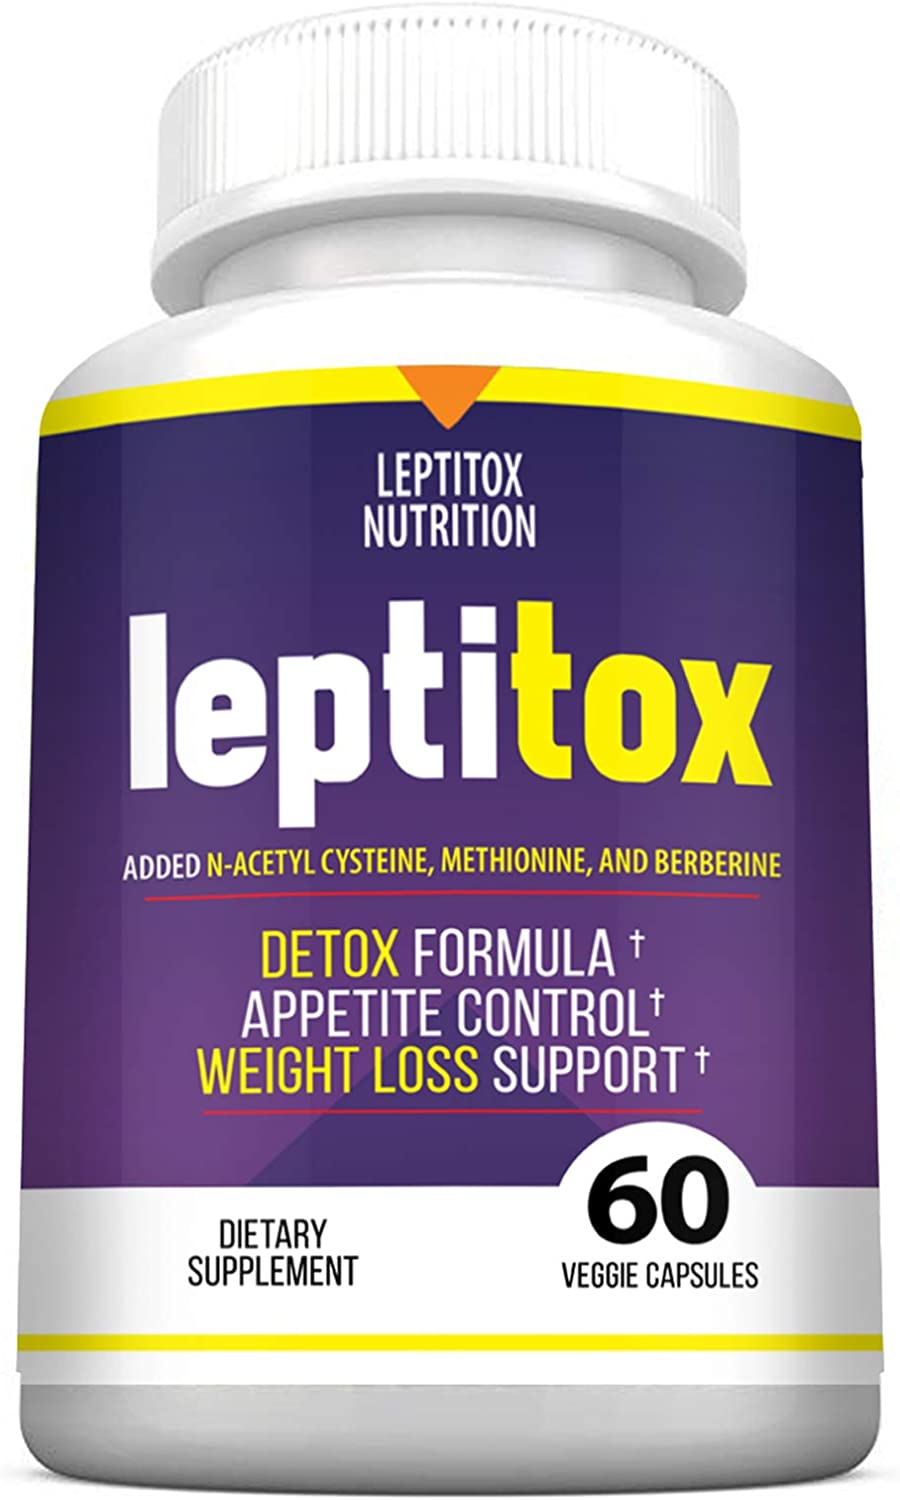 Extended Warranty Cost  Leptitox Weight Loss